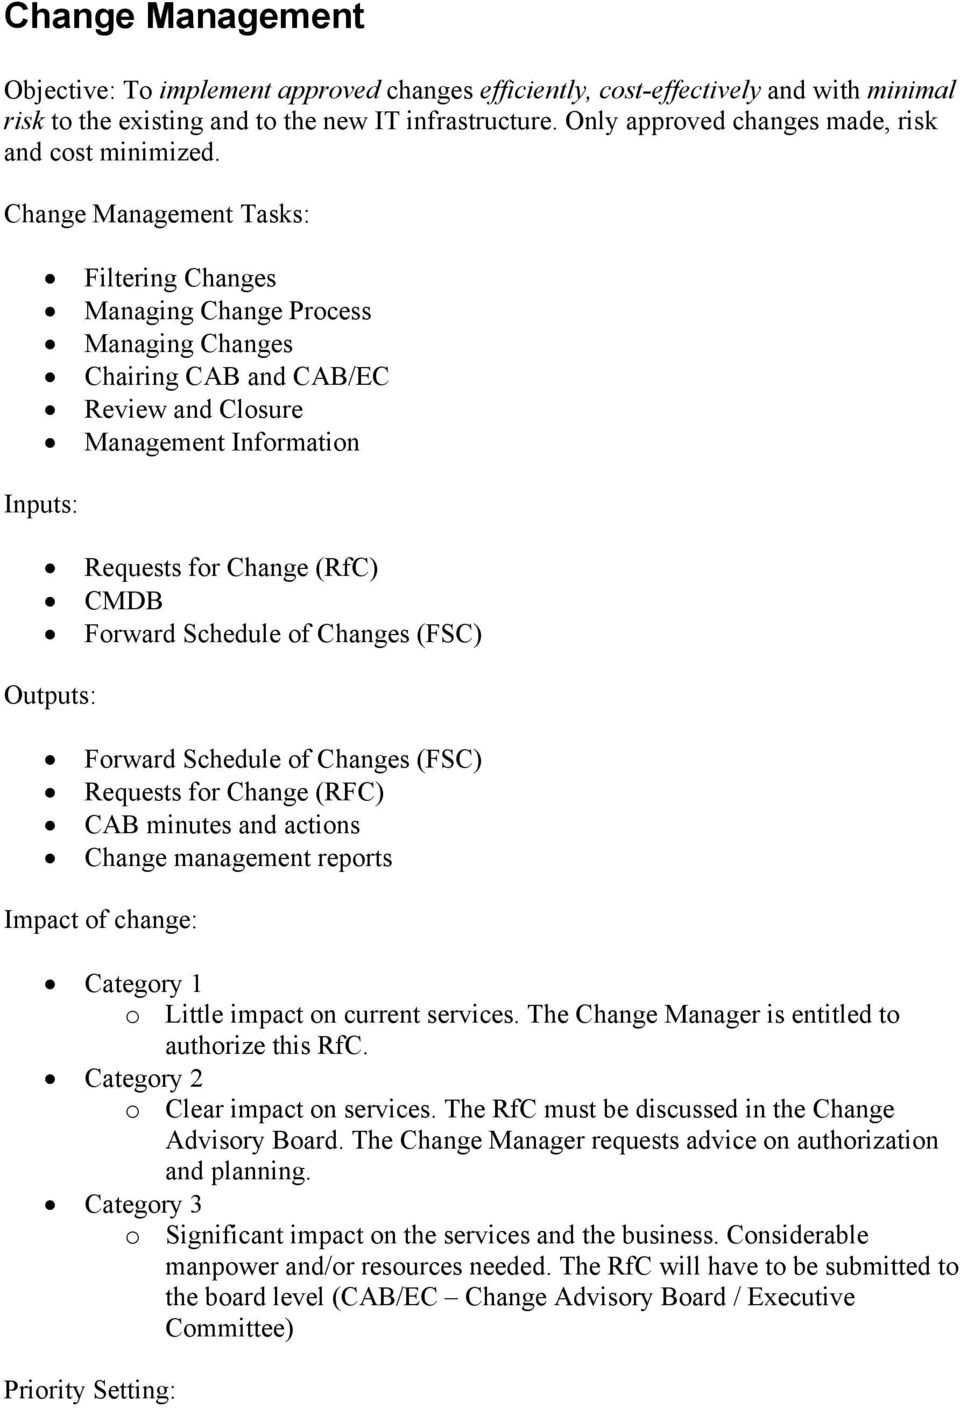 Change Management Tasks: Filtering Changes Managing Change Process Managing Changes Chairing CAB and CAB/EC Review and Closure Management Information Inputs: Requests for Change (RfC) CMDB Forward